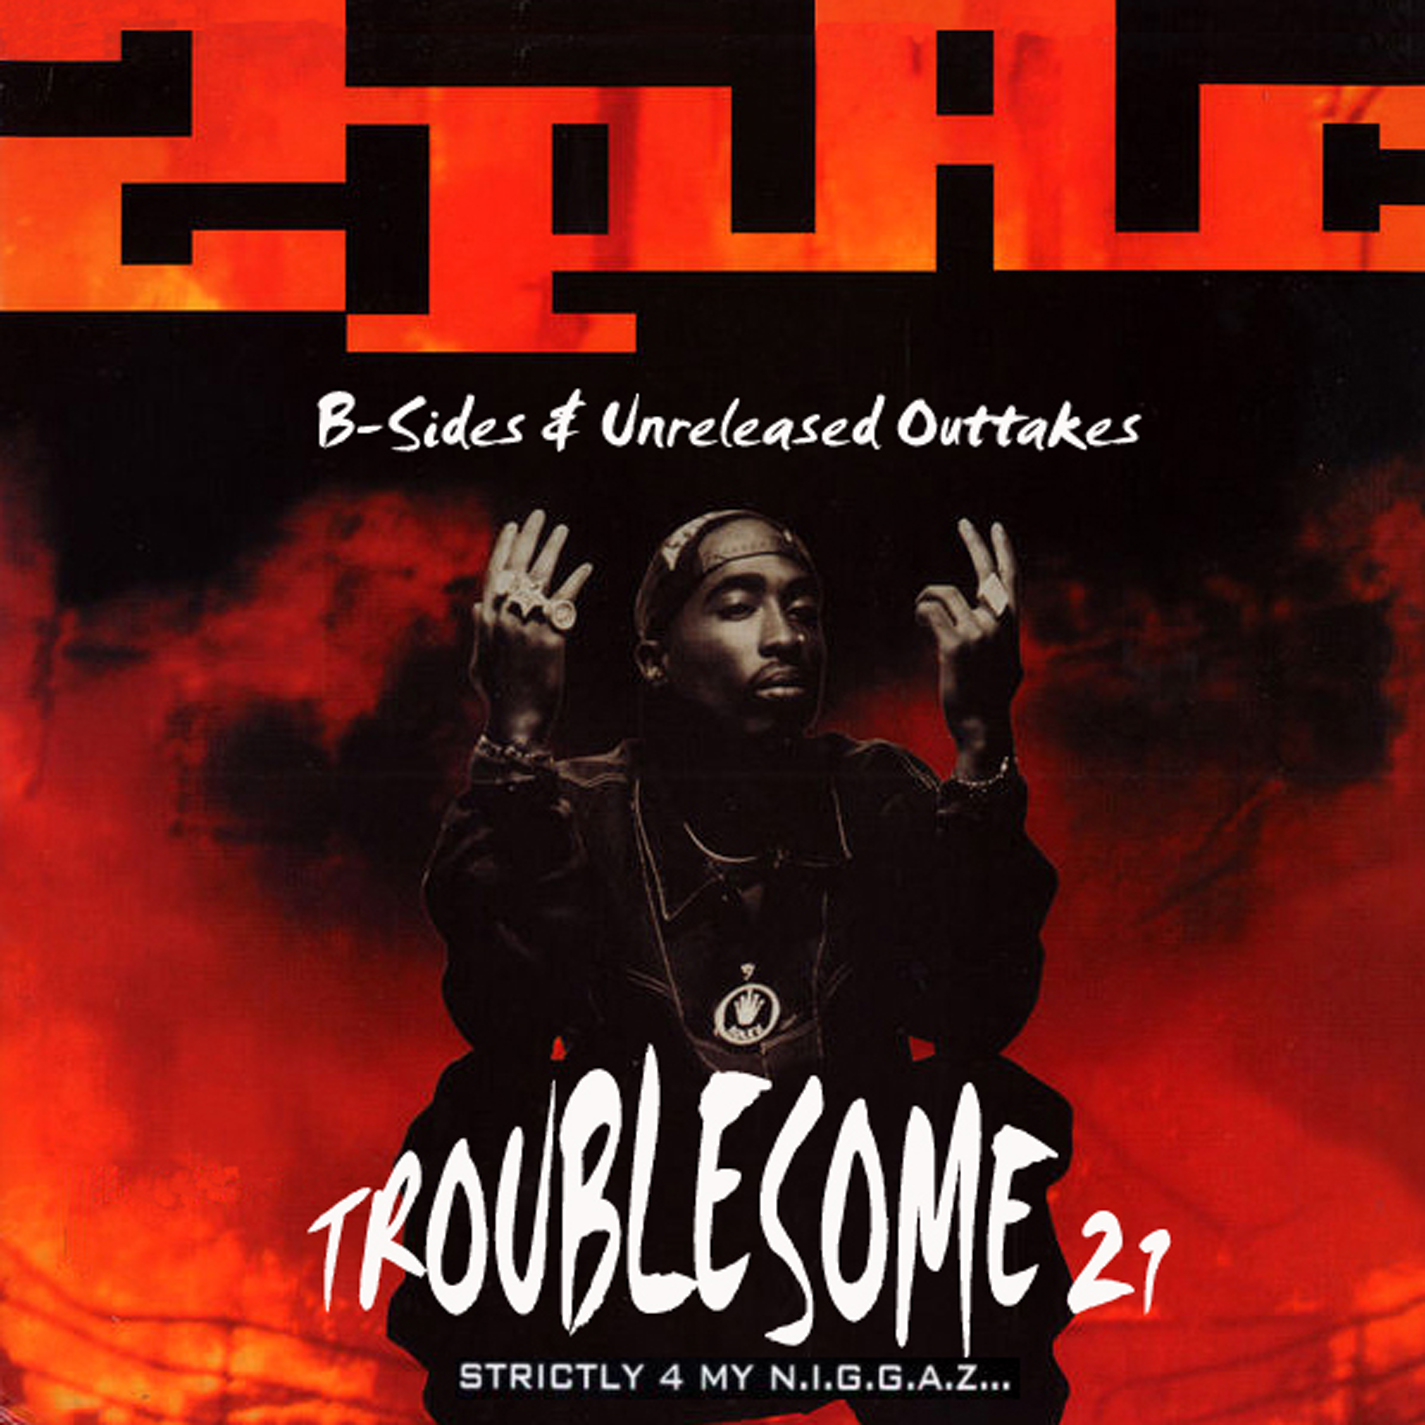 2pac unreleased songs mp3 download